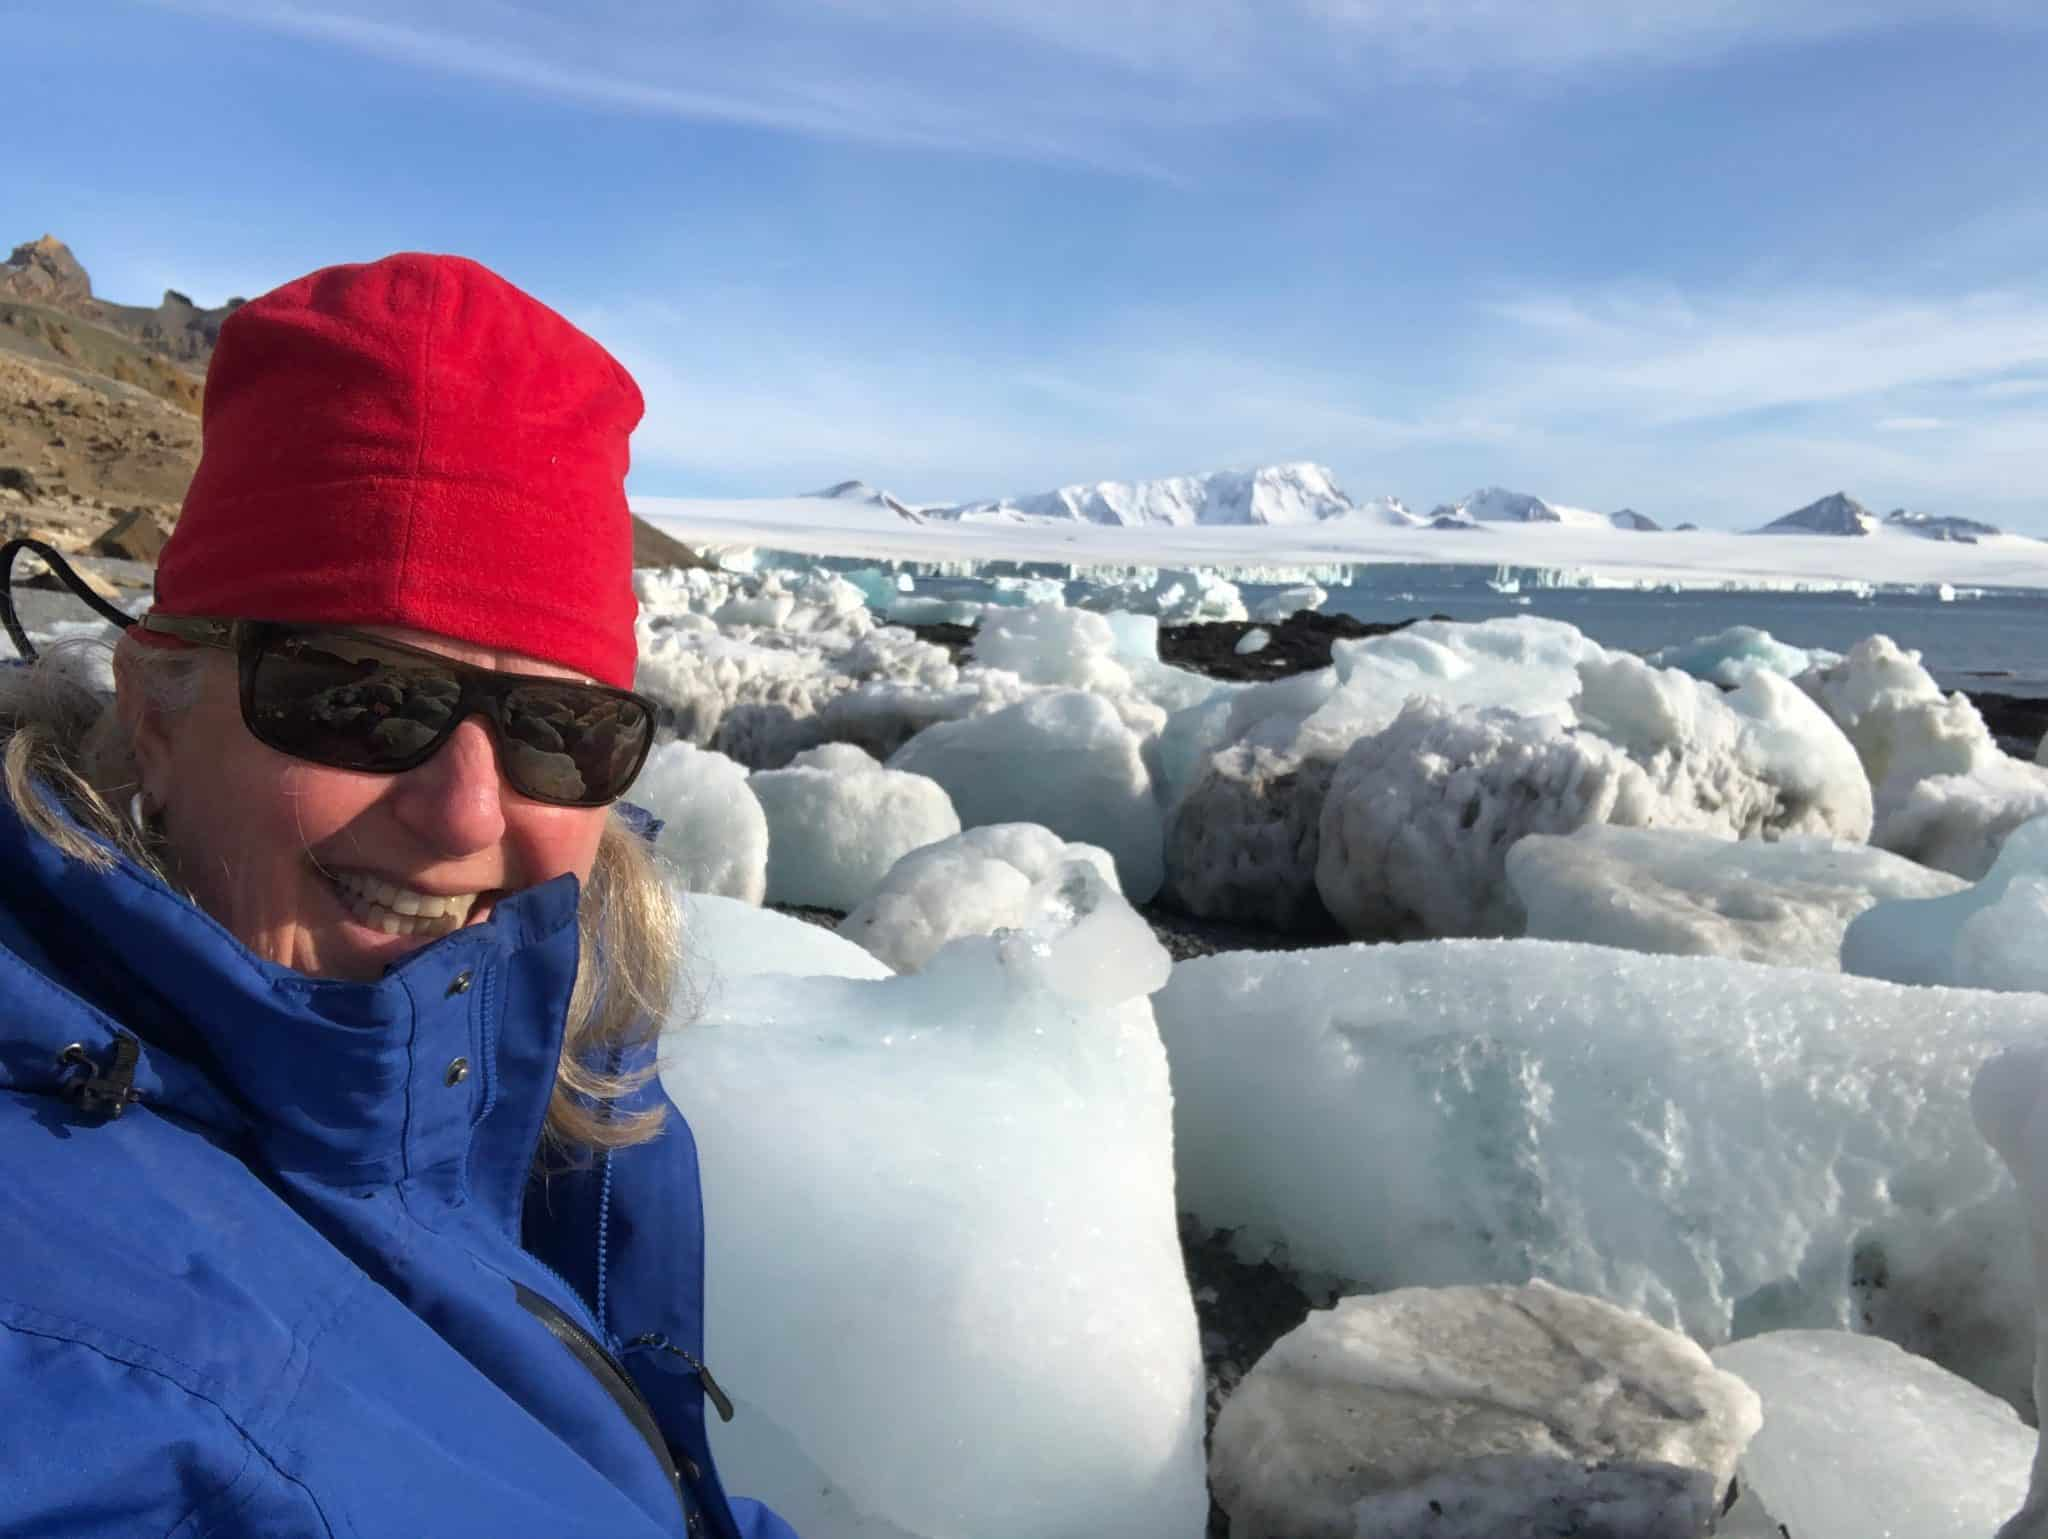 melanie_ceo_rare_finds_travel_with_ice_floes_on_antarctica_beach